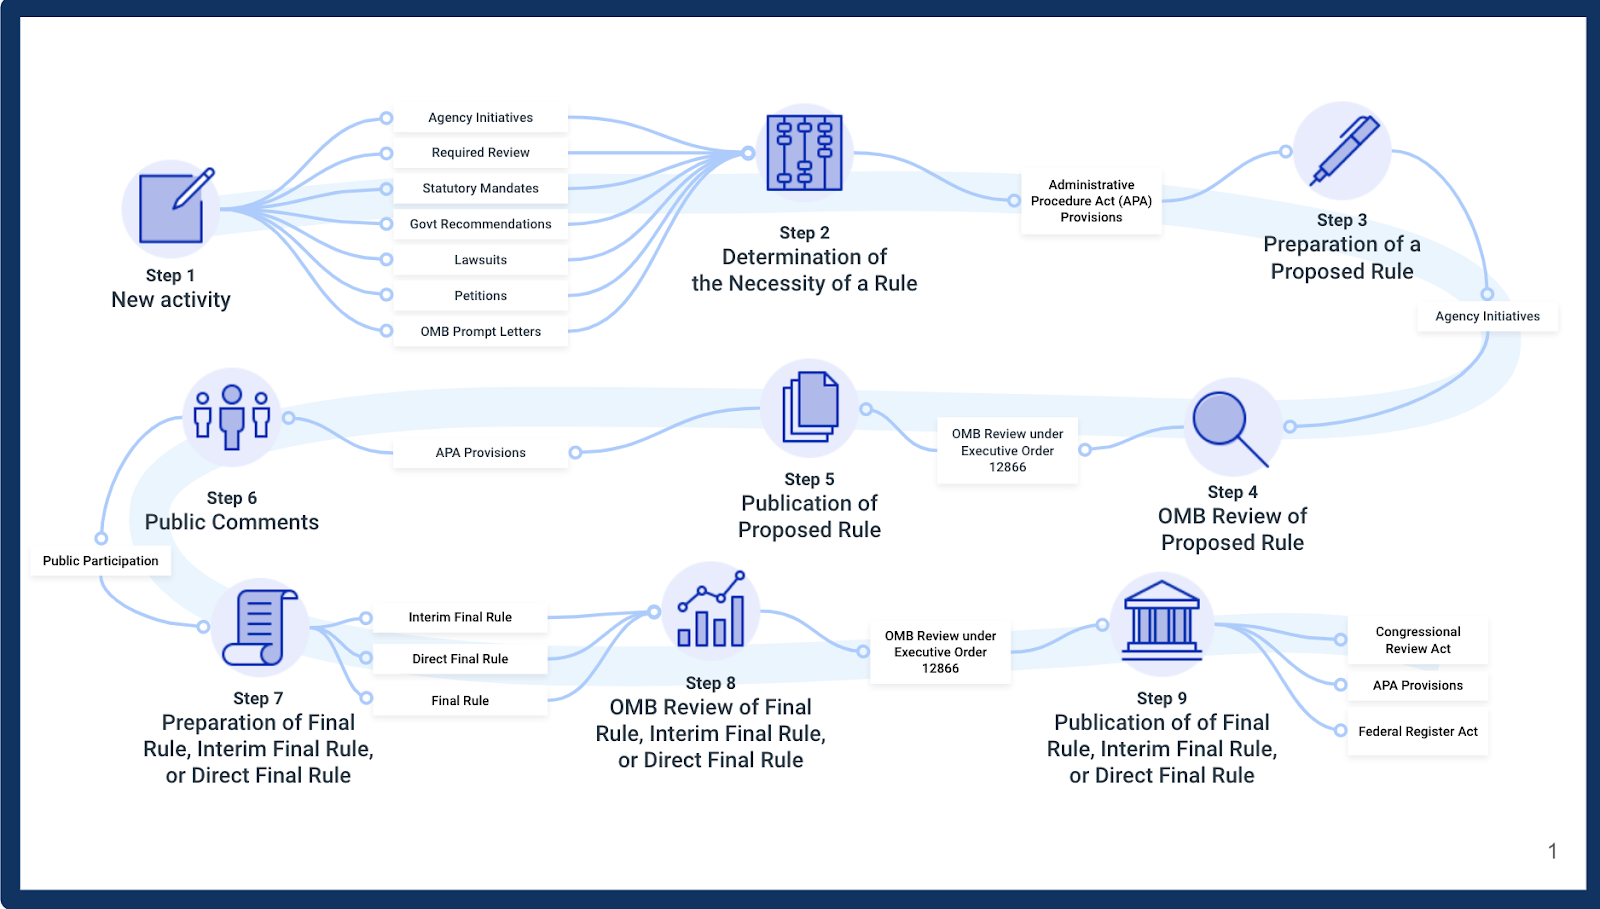 A brief summary of the federal regulatory process